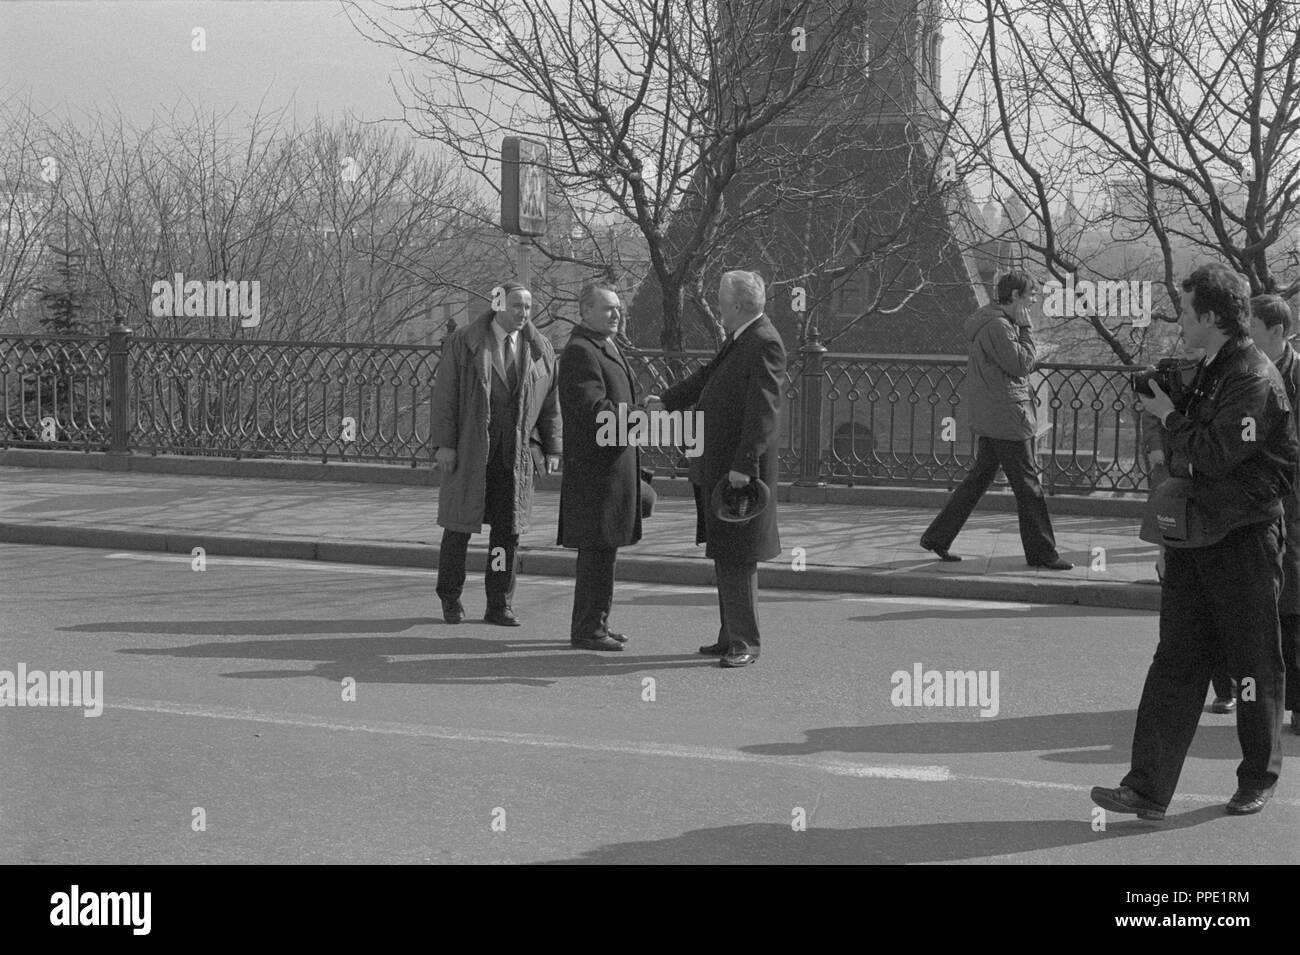 Moscow, Russia - March 28, 1991: Chairman of the Presidium of the Supreme Soviet of the Russian SFSR Boris Nikolayevich Yeltsin greets unknown person outdoors in Kremlin during 3d extraordinary Congress of people's deputies of russian RSFSR. - Stock Image